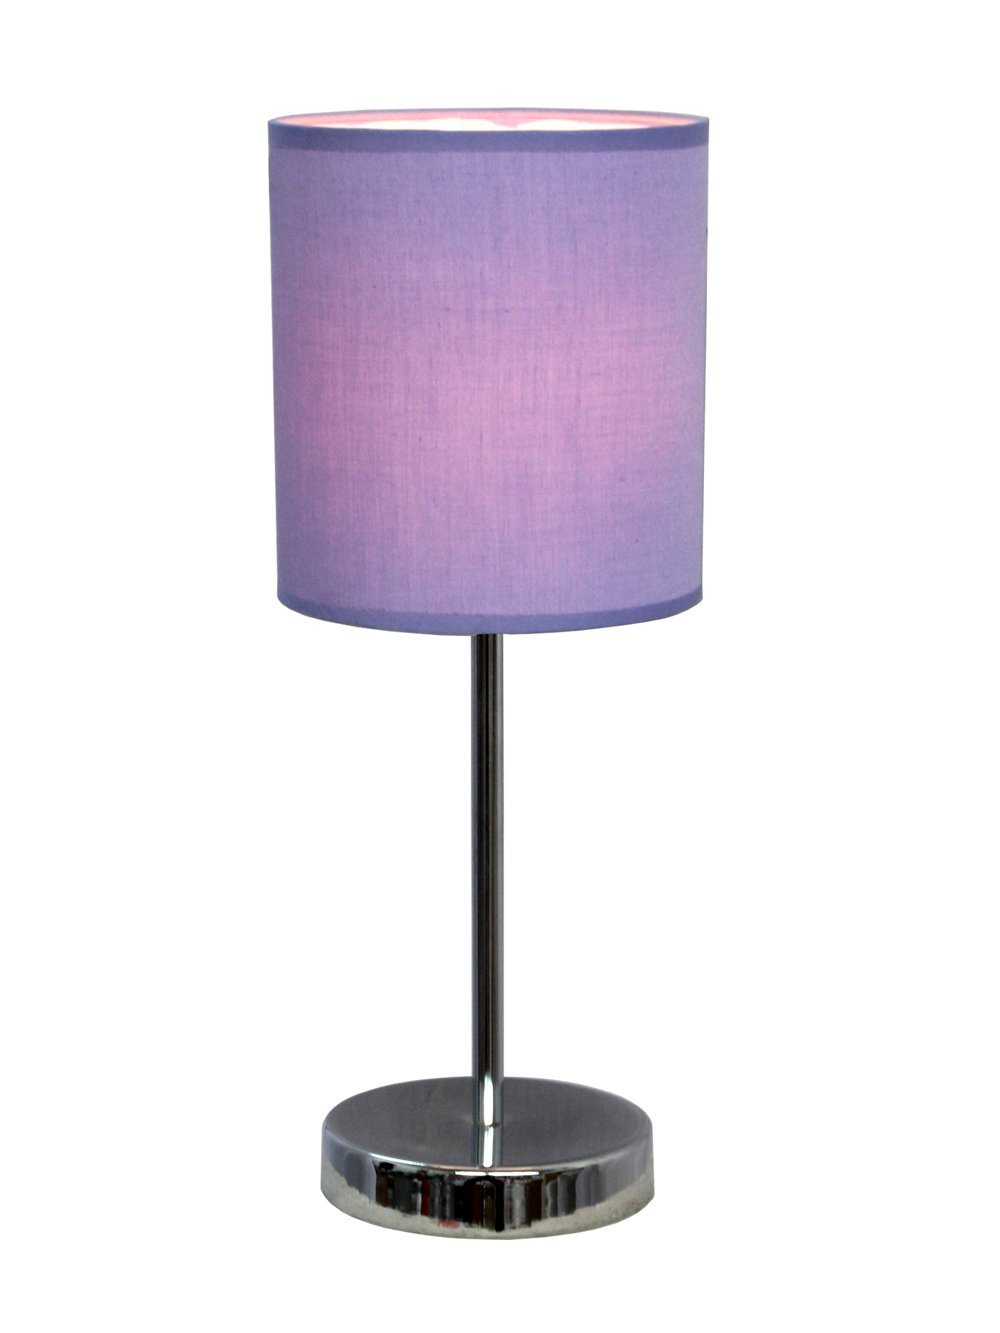 Simple Designs Home LT2007-PRP Simple Designs Chrome Mini Basic Table Lamp with Fabric Shade, 5.51'' x 5.51'' x 11.81'', Purple